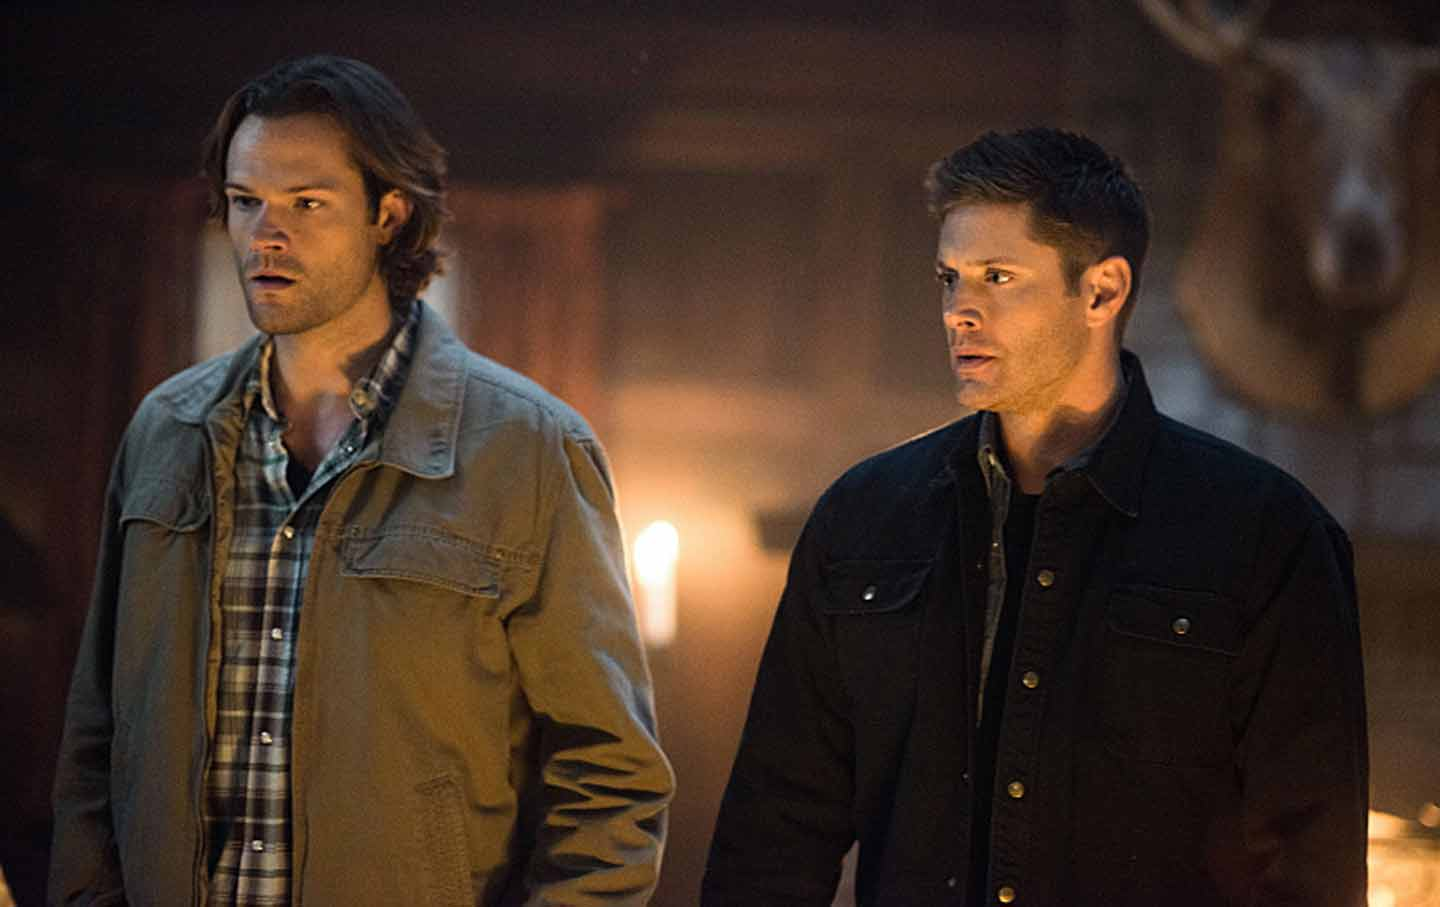 'Supernatural' gets the cut for Season 14 with shorter episode count